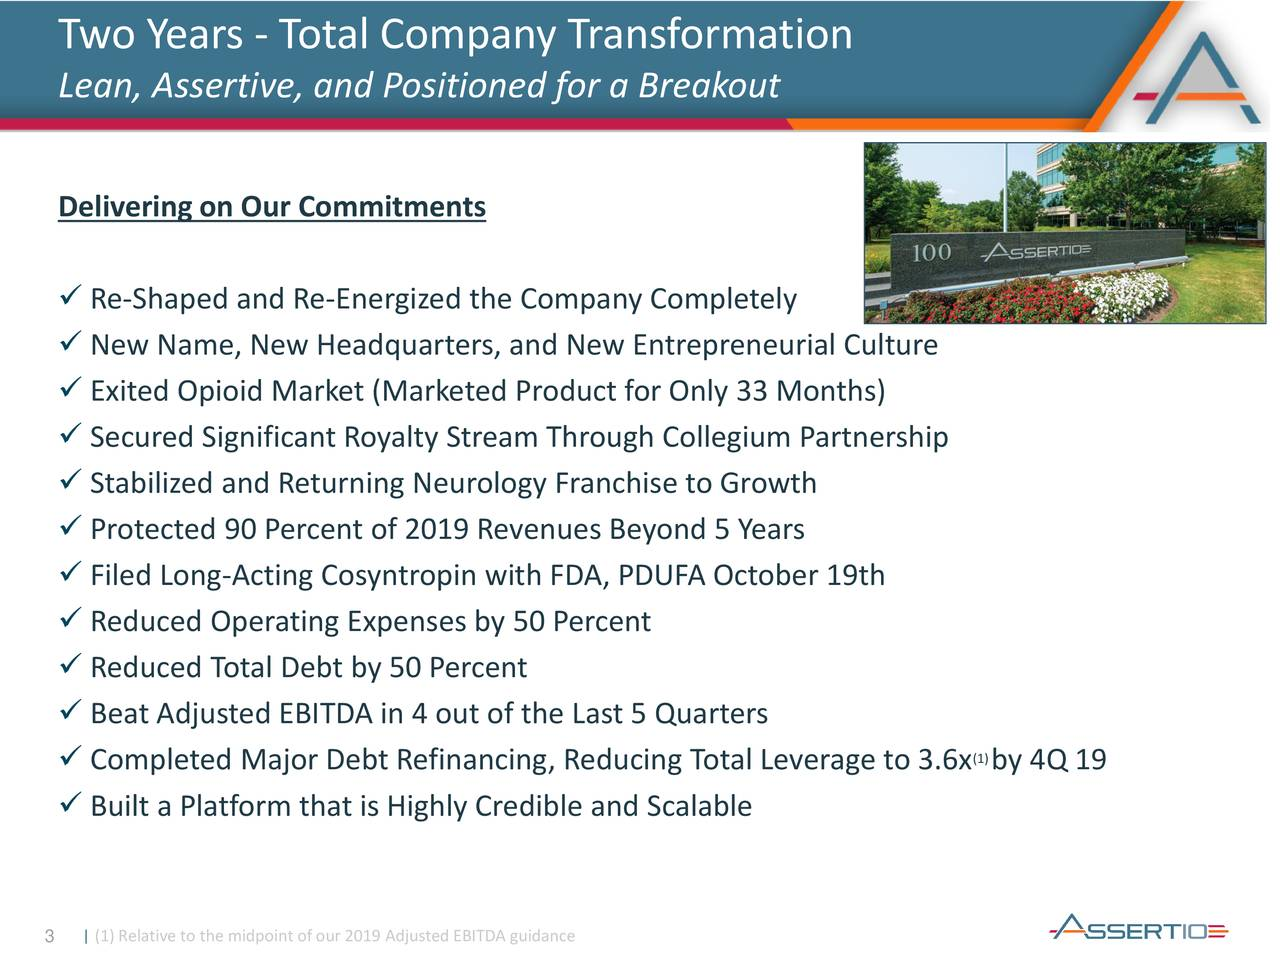 Two Years - Total Company Transformation